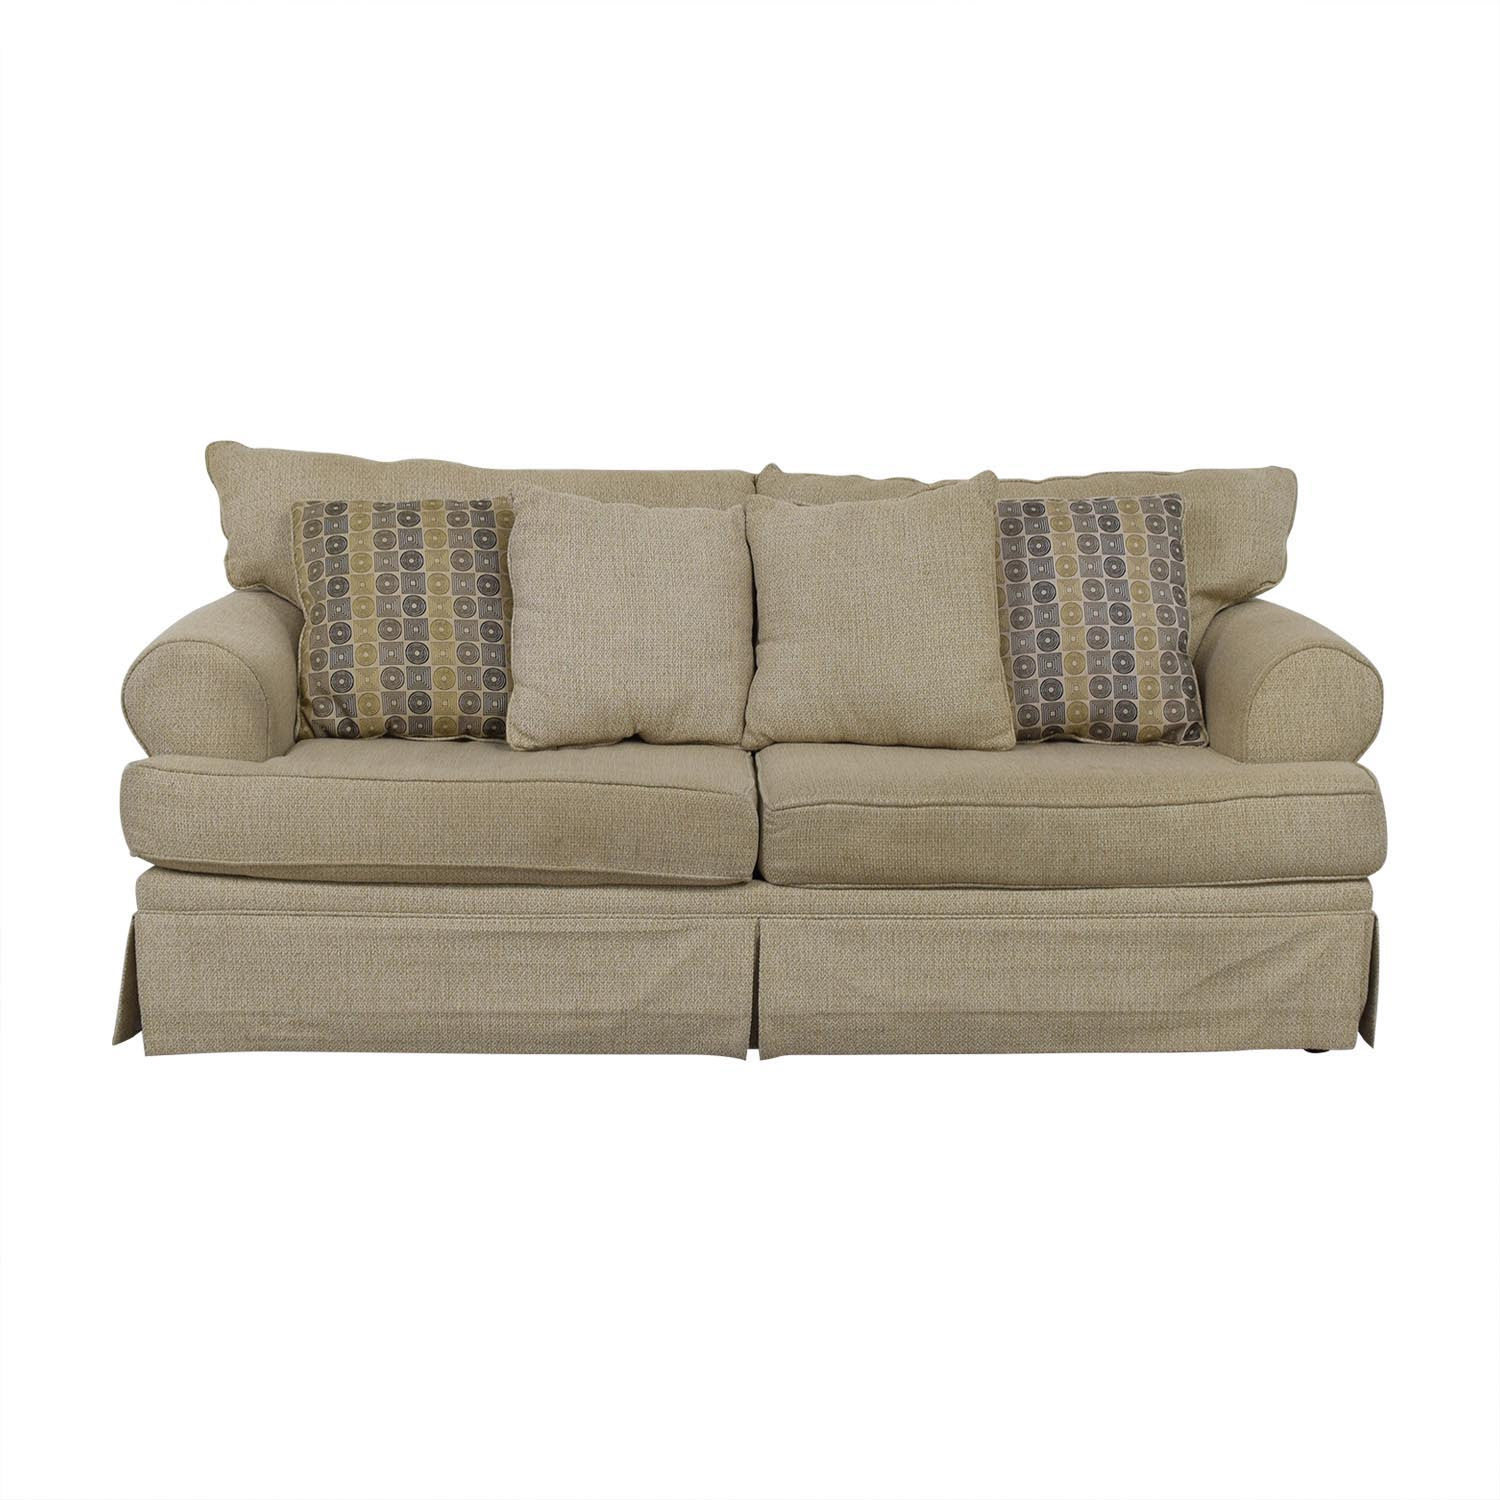 May Furniture May Furniture Stone Tweed Two-Cushion Sofa dimensions